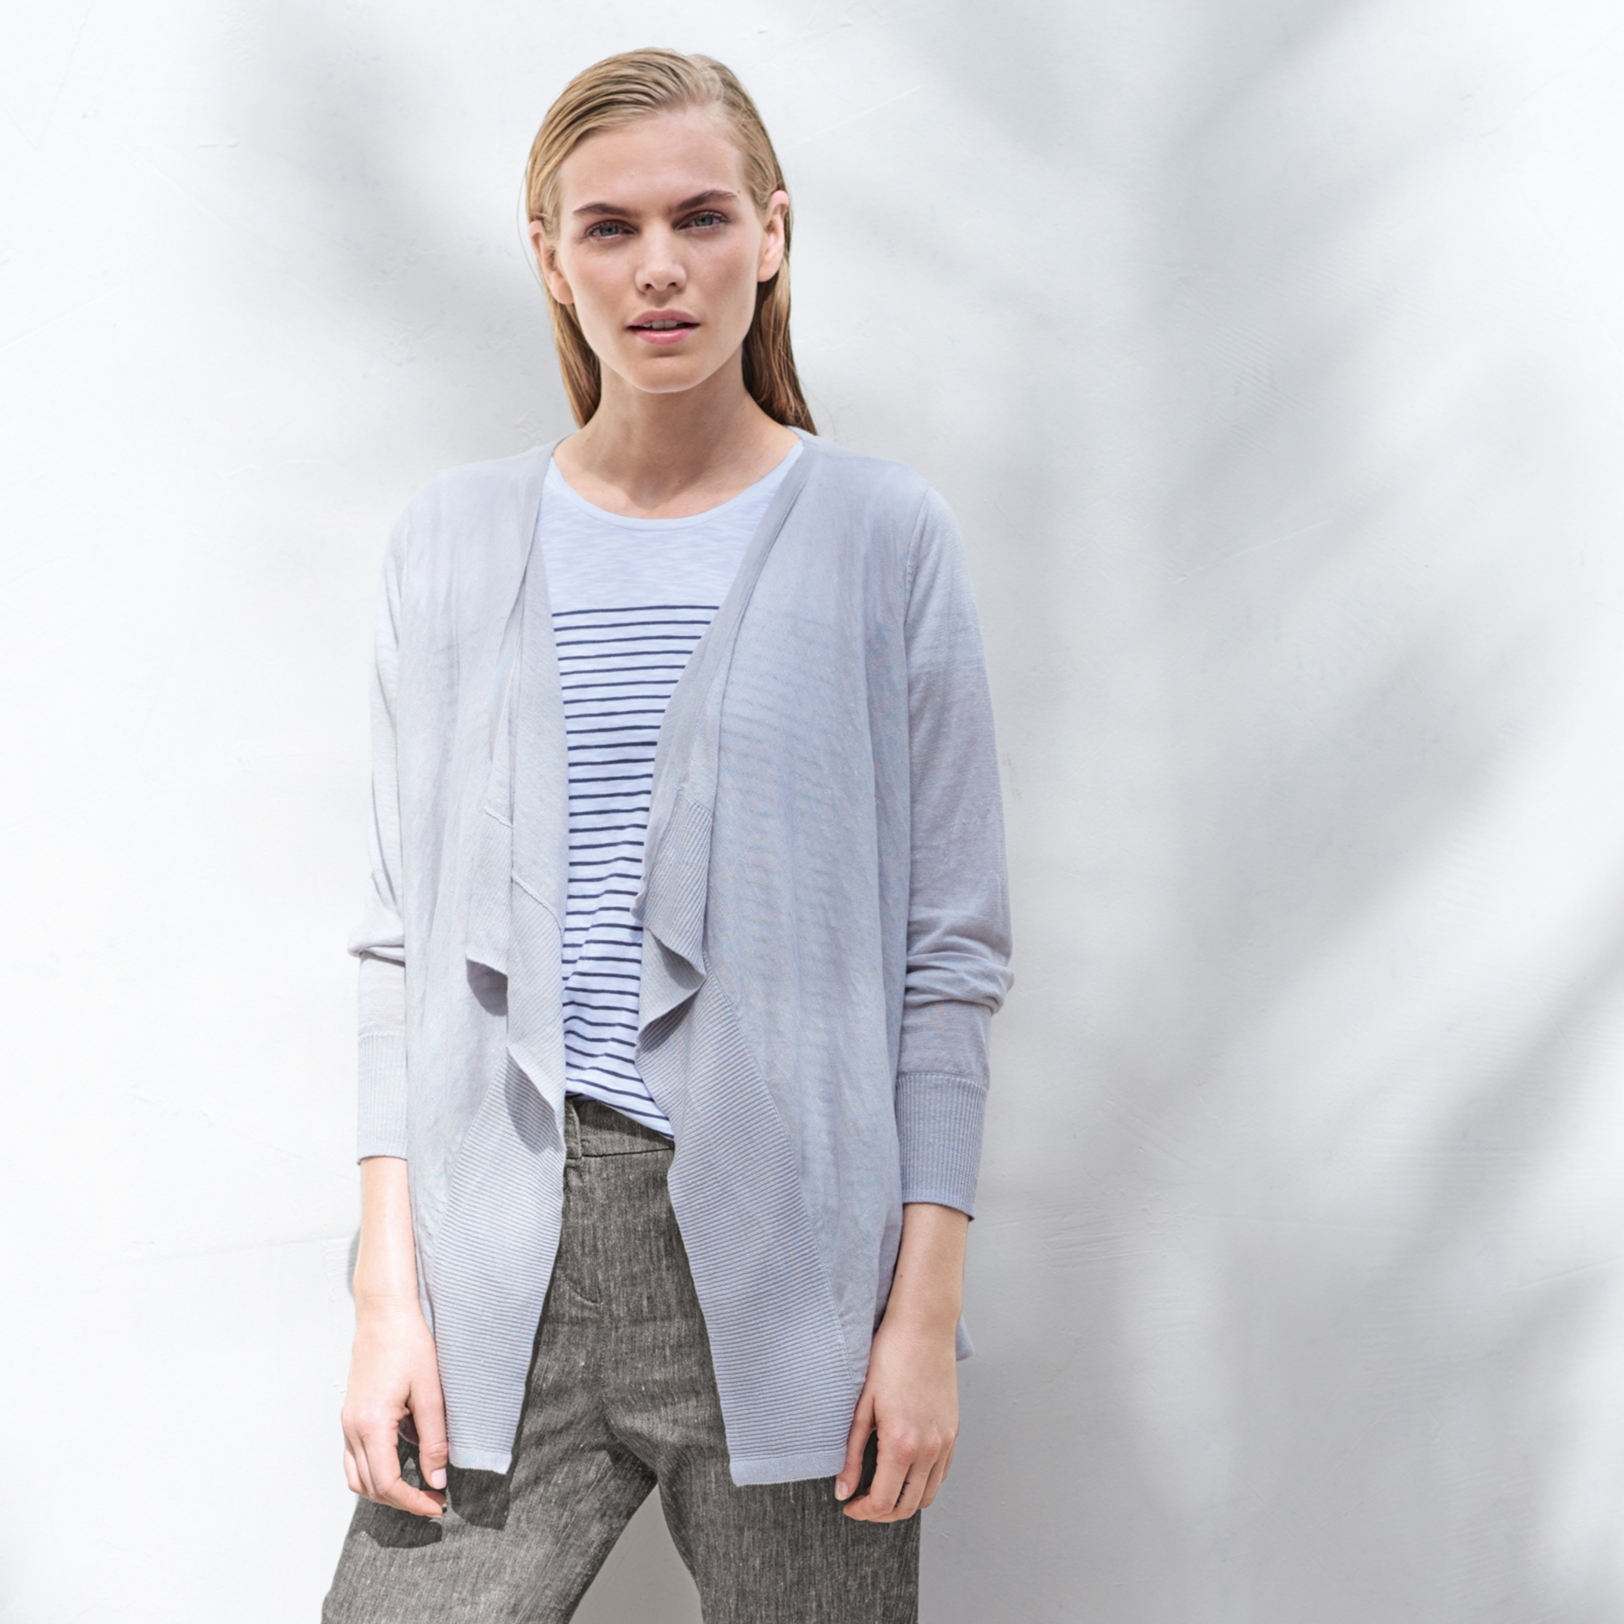 Linen Waterfall Cardigan | Sweaters & Cardigans | The White Company US